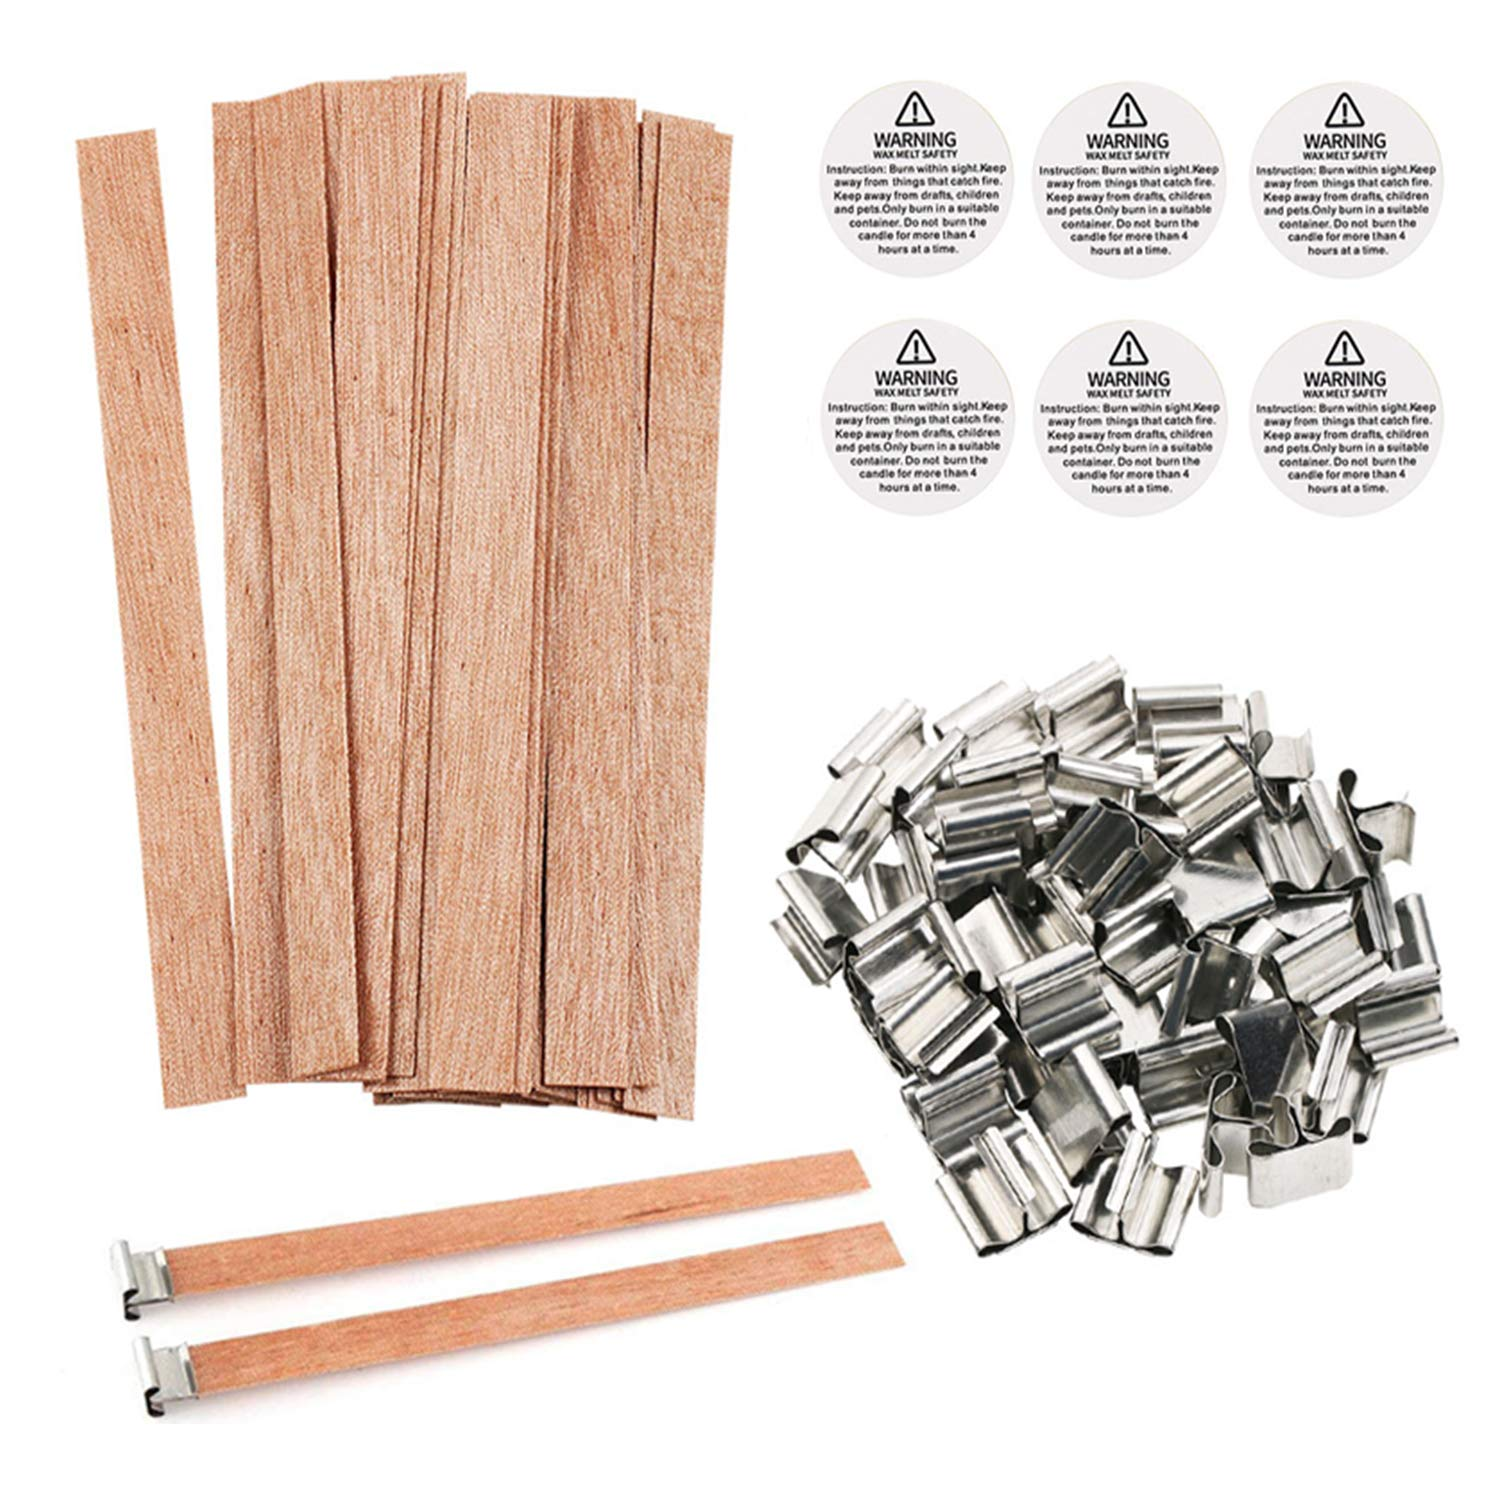 BENBO 50 Pieces Smokeless 5.1 X 0.5 Inch Natural Candle Wicks with Iron Stand Candle Cores for DIY Candle Making Craft (Wooden)